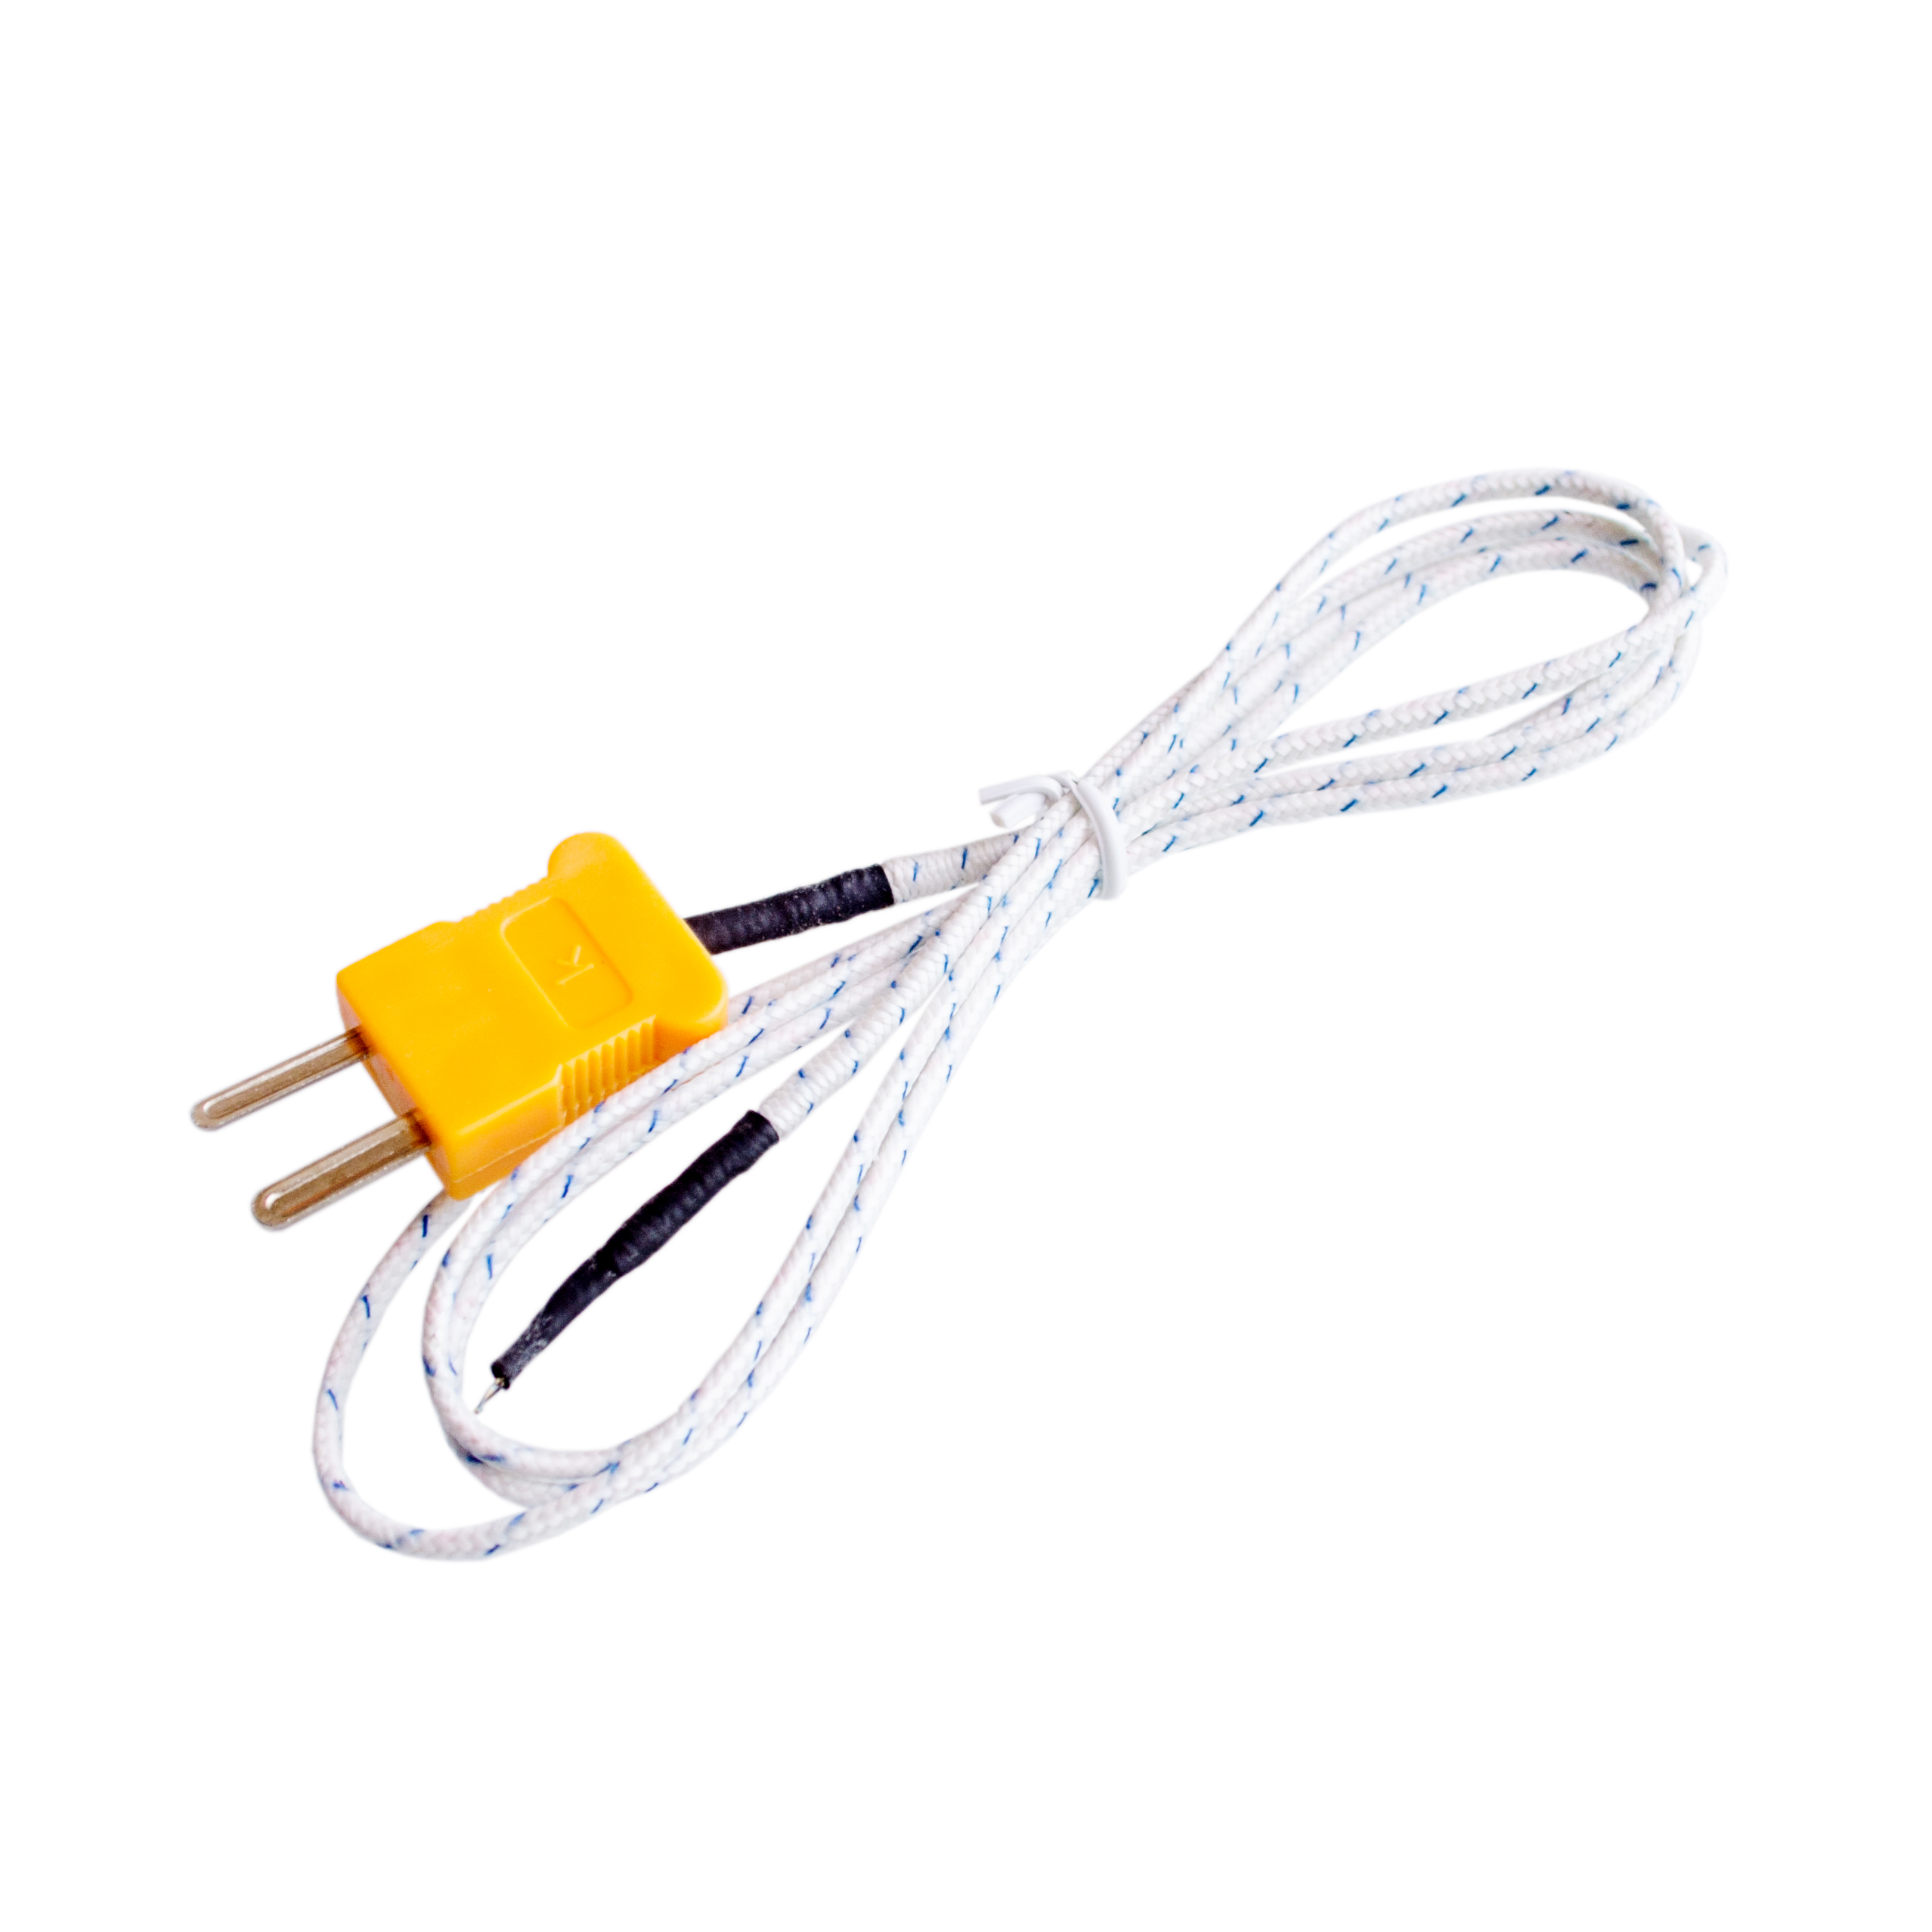 K type surface thermocouple temperature sensor 1m wire thermocouple probe -20~500CK type surface thermocouple temperature sensor 1m wire thermocouple probe -20~500C